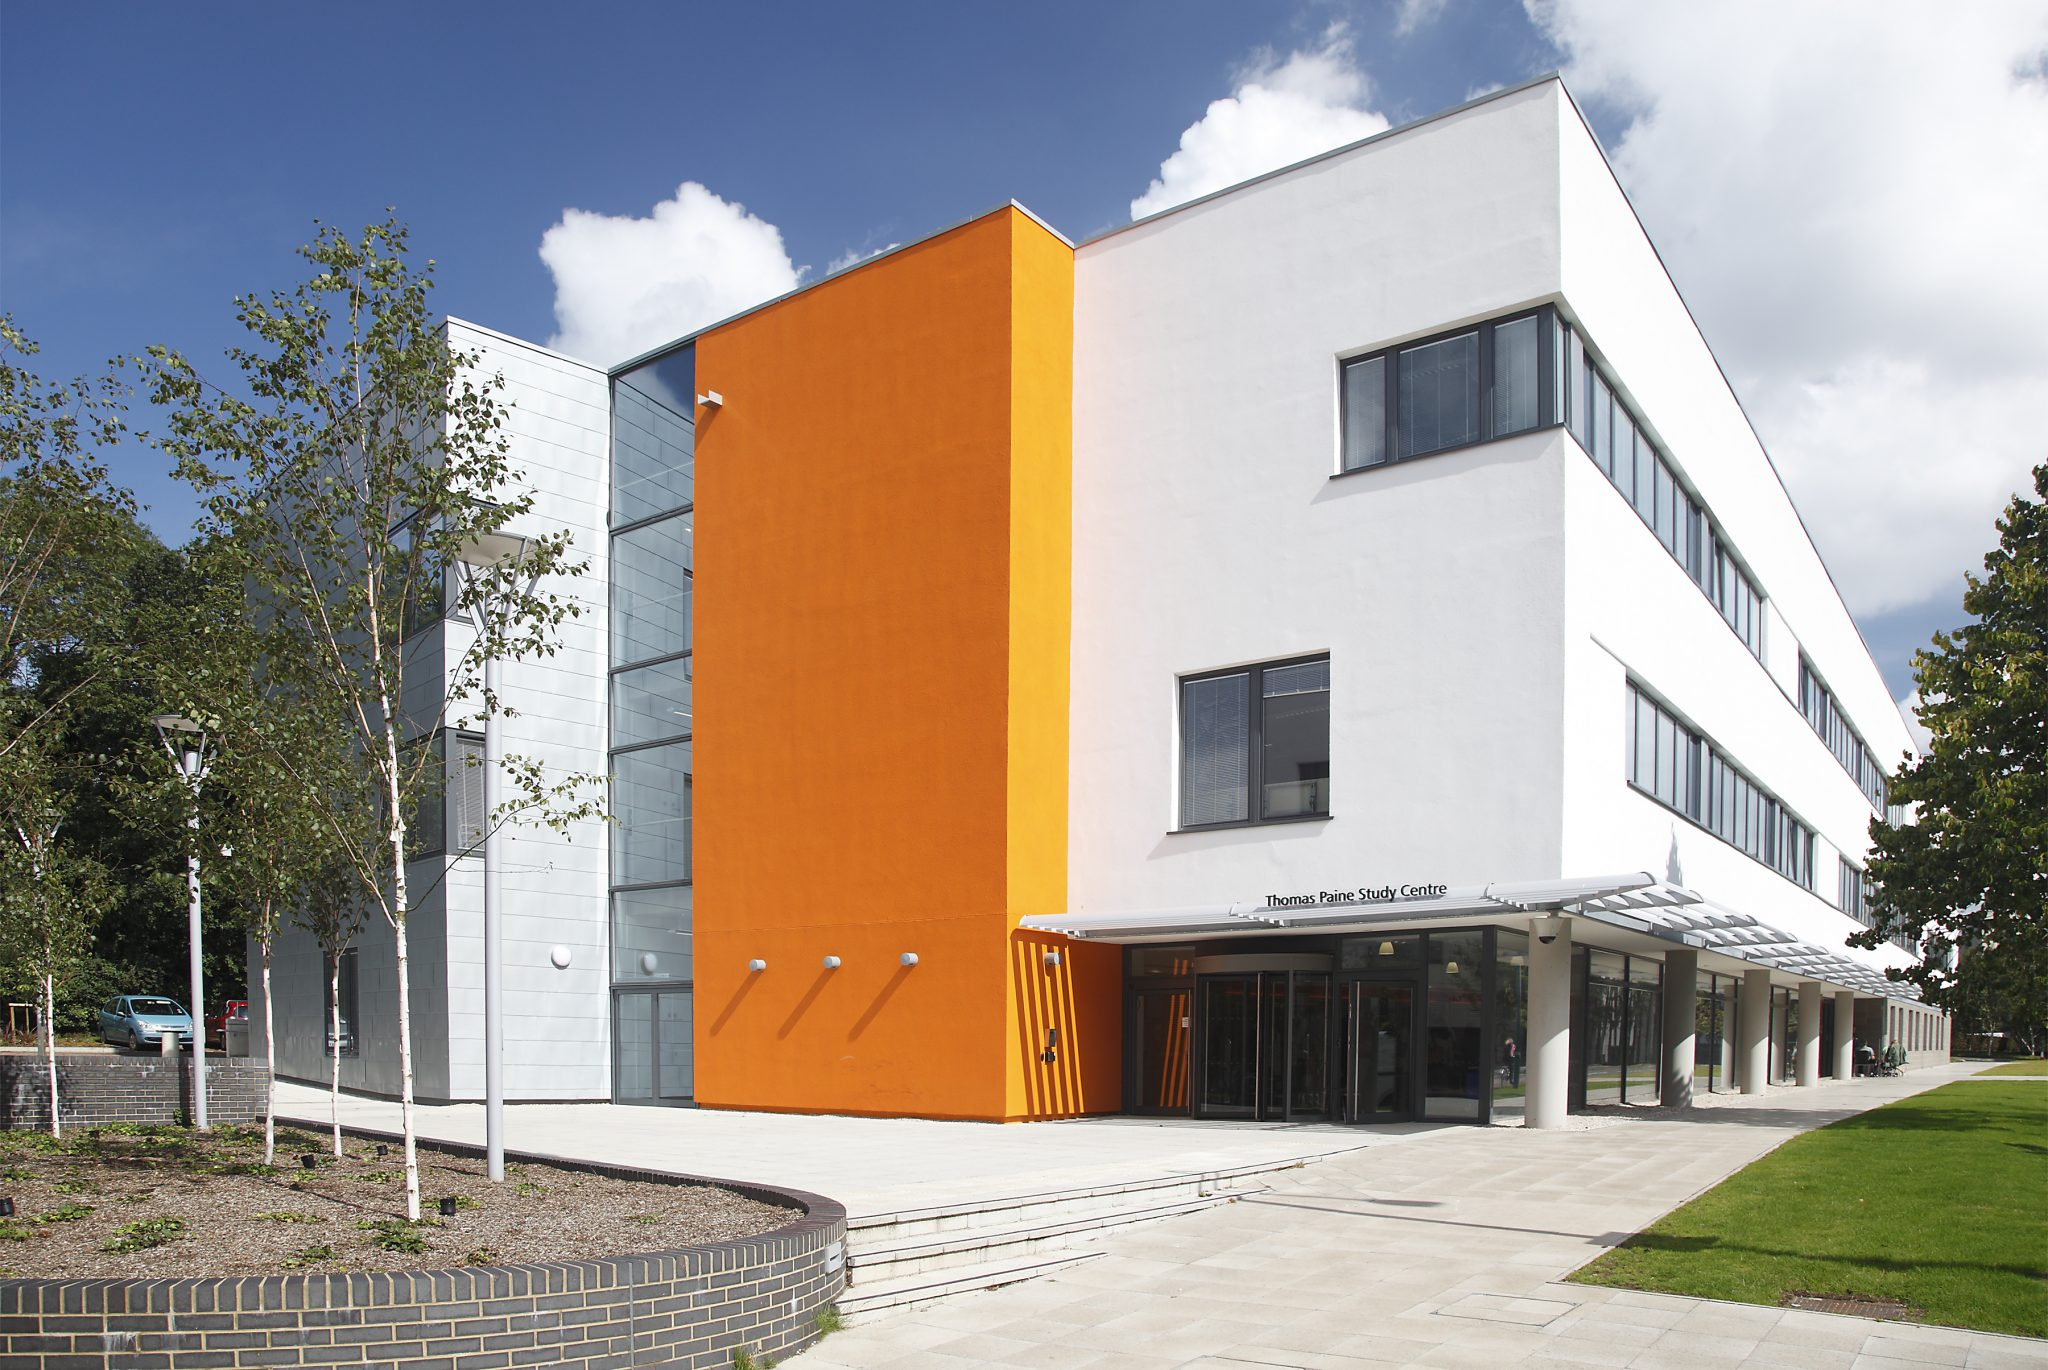 Thomas Paine Study Centre, University of East Anglia